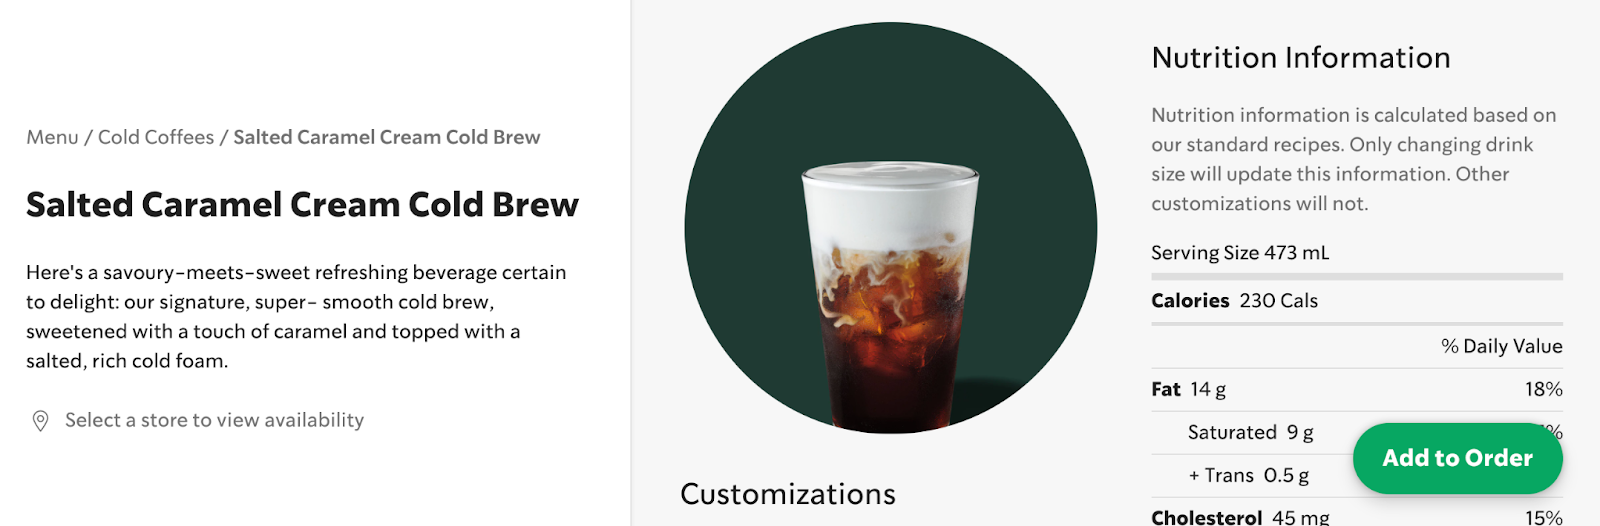 Salted Caramel Cream Cold Brew order page with nutrition facts.